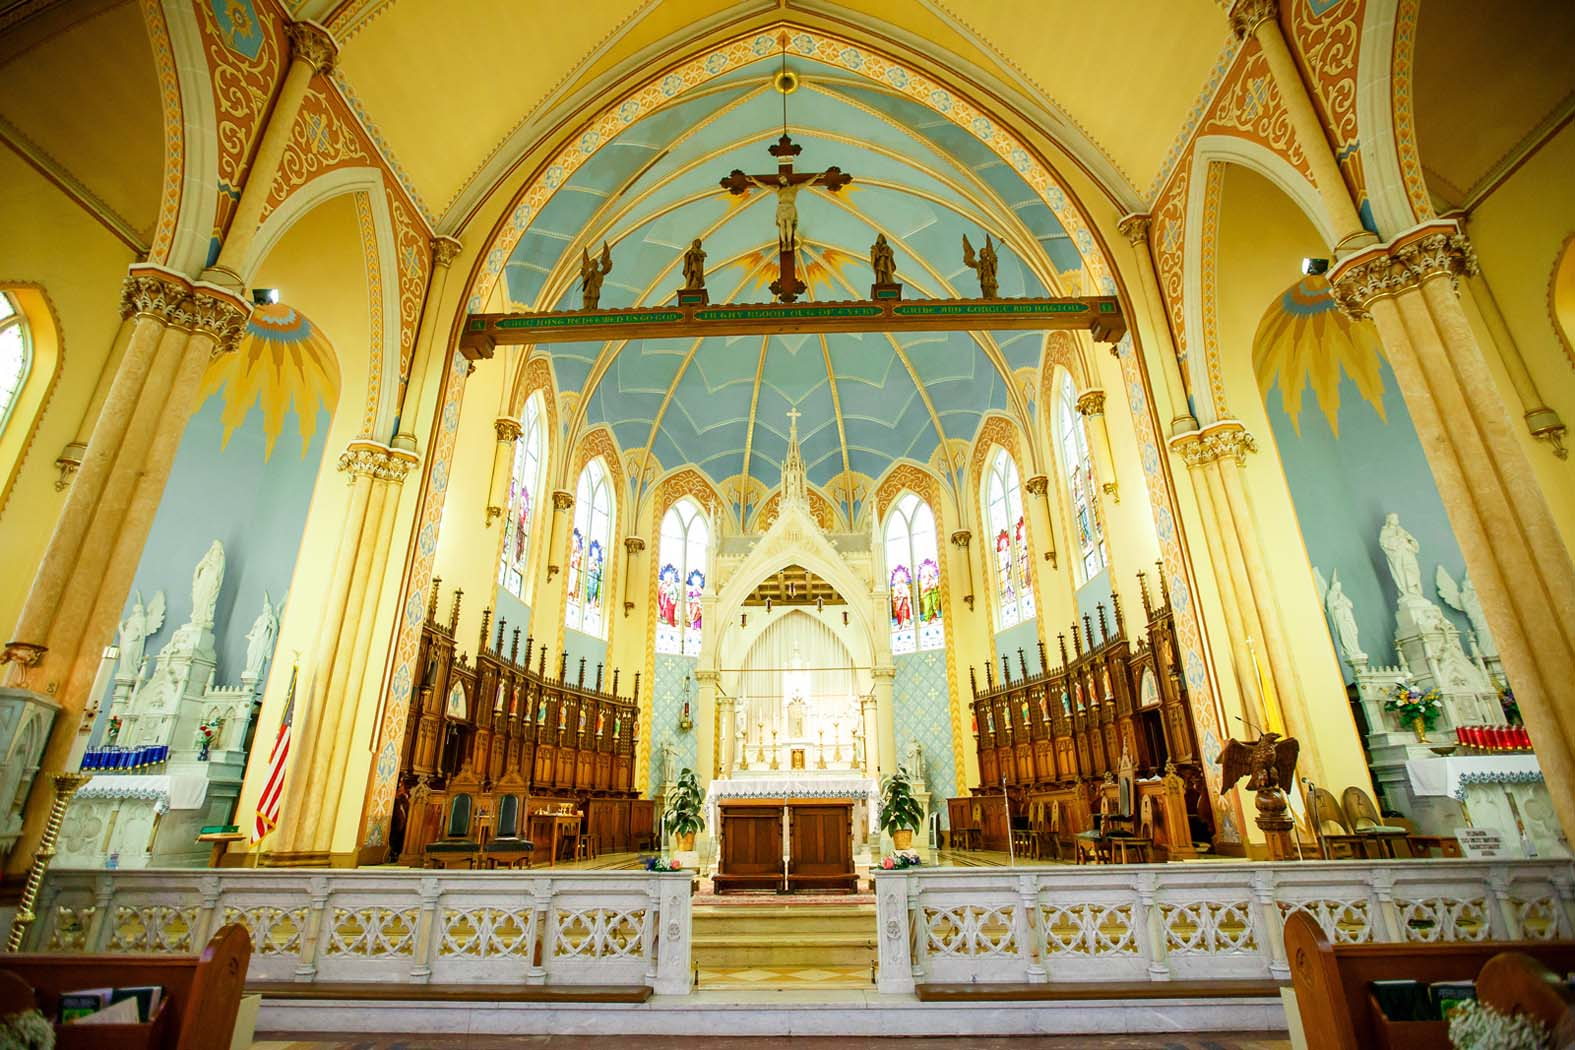 Ste. Genevieve Catholic Church / Heart of St. Charles / Old Town St. Charles by Oldani Photography